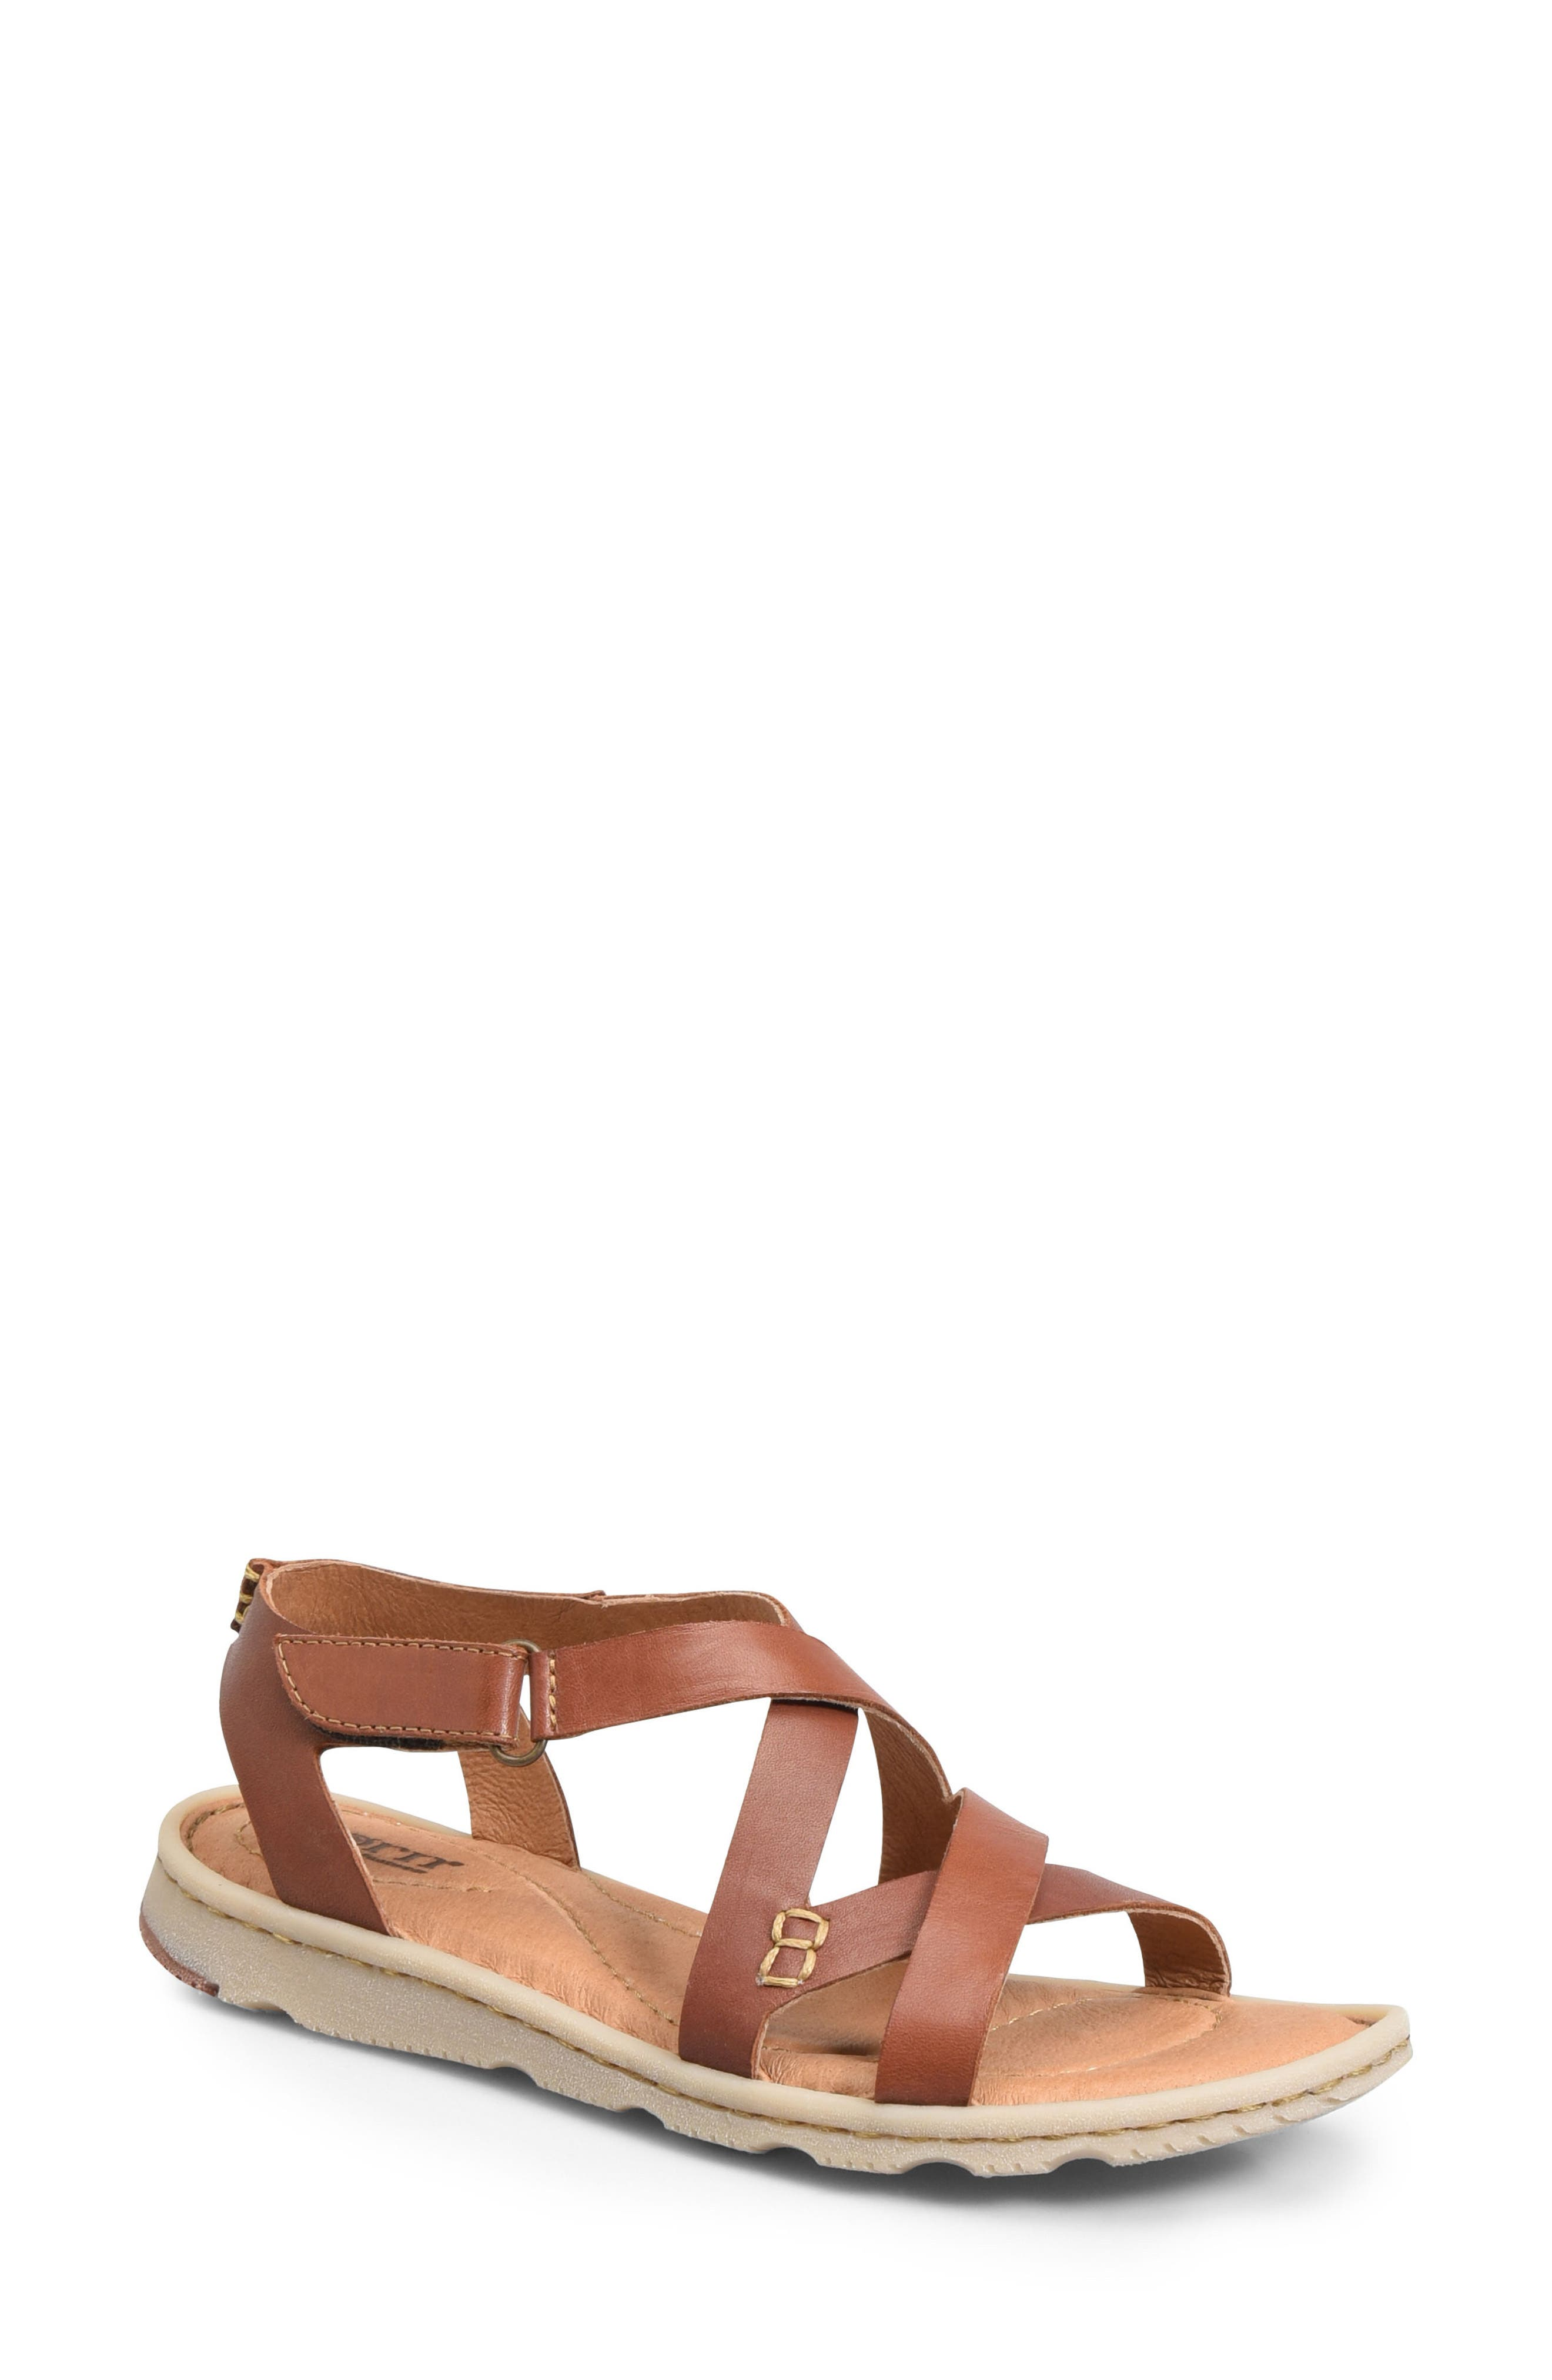 Trinidad Sandal,                         Main,                         color, Brown Leather